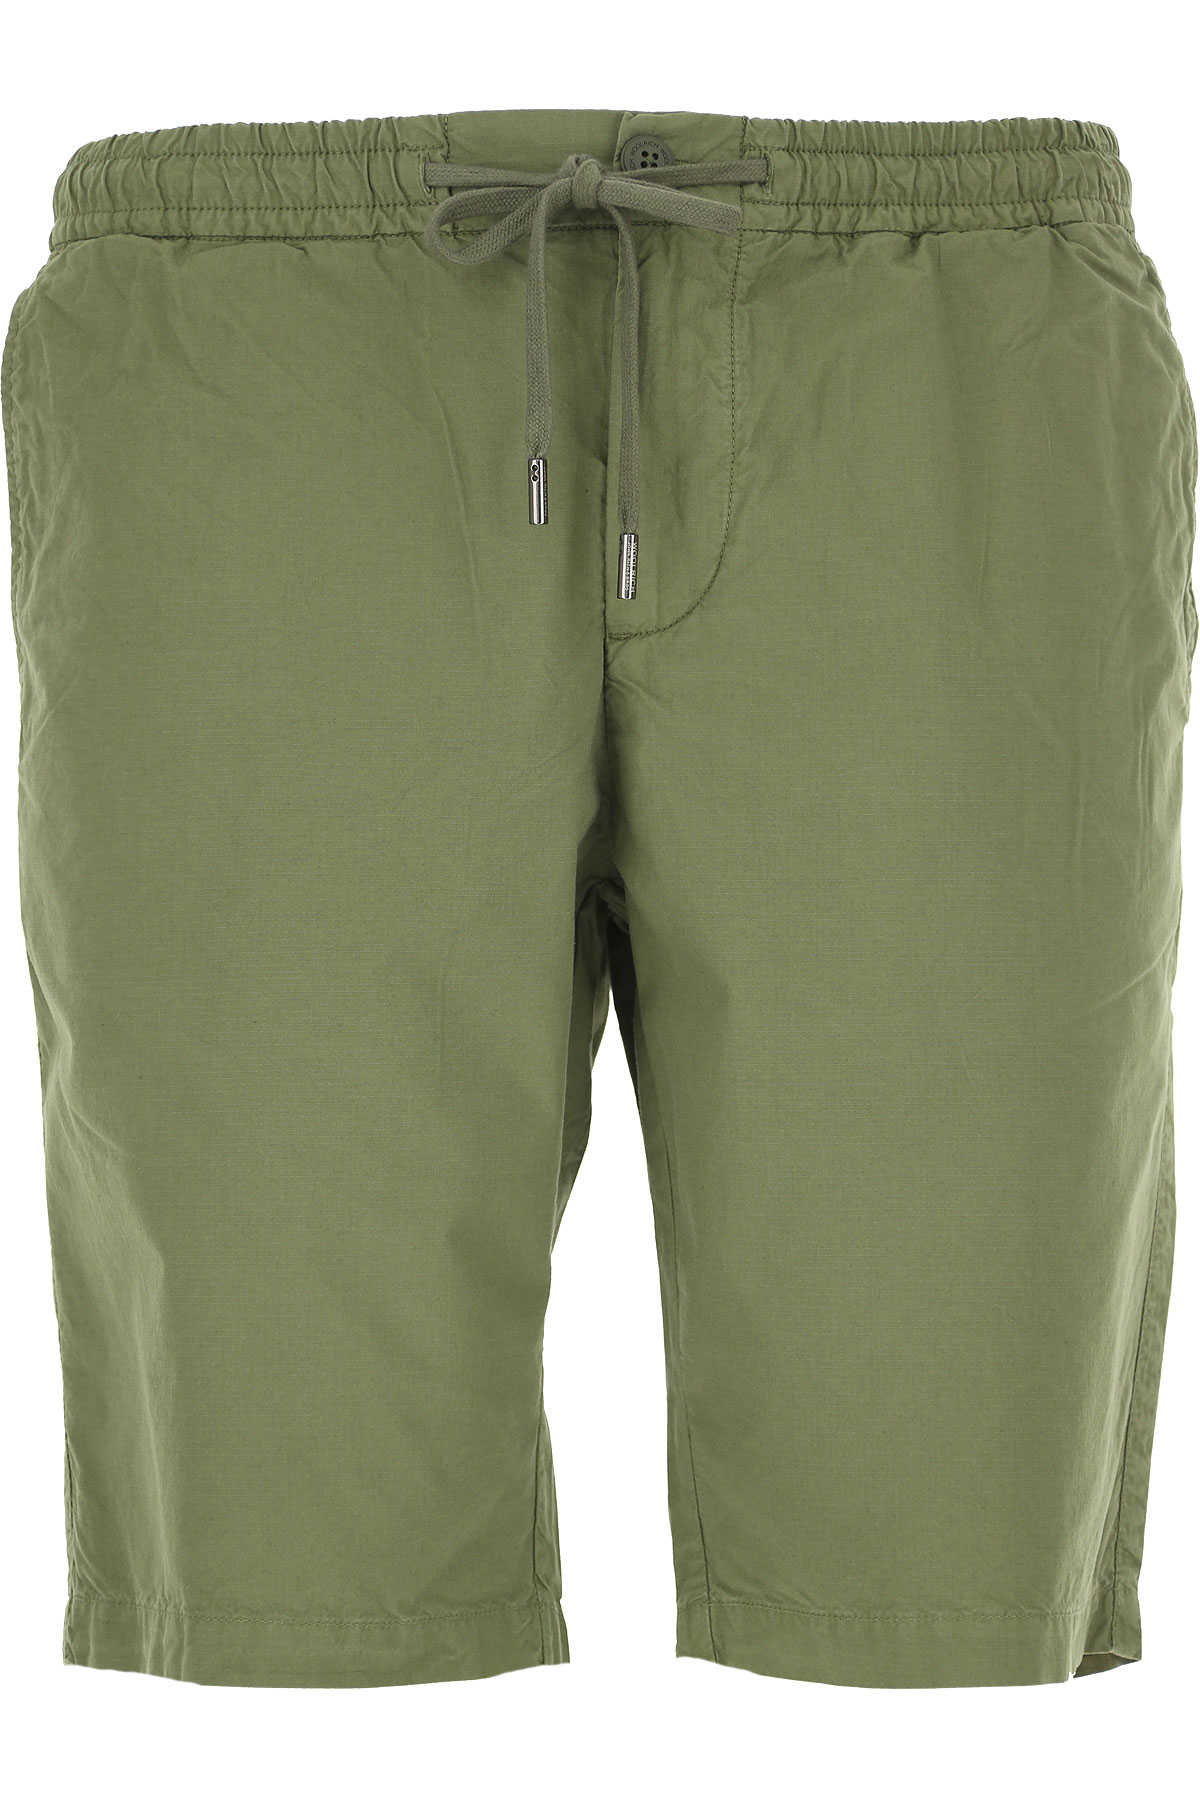 Woolrich Shorts for Men Military Green USA - GOOFASH